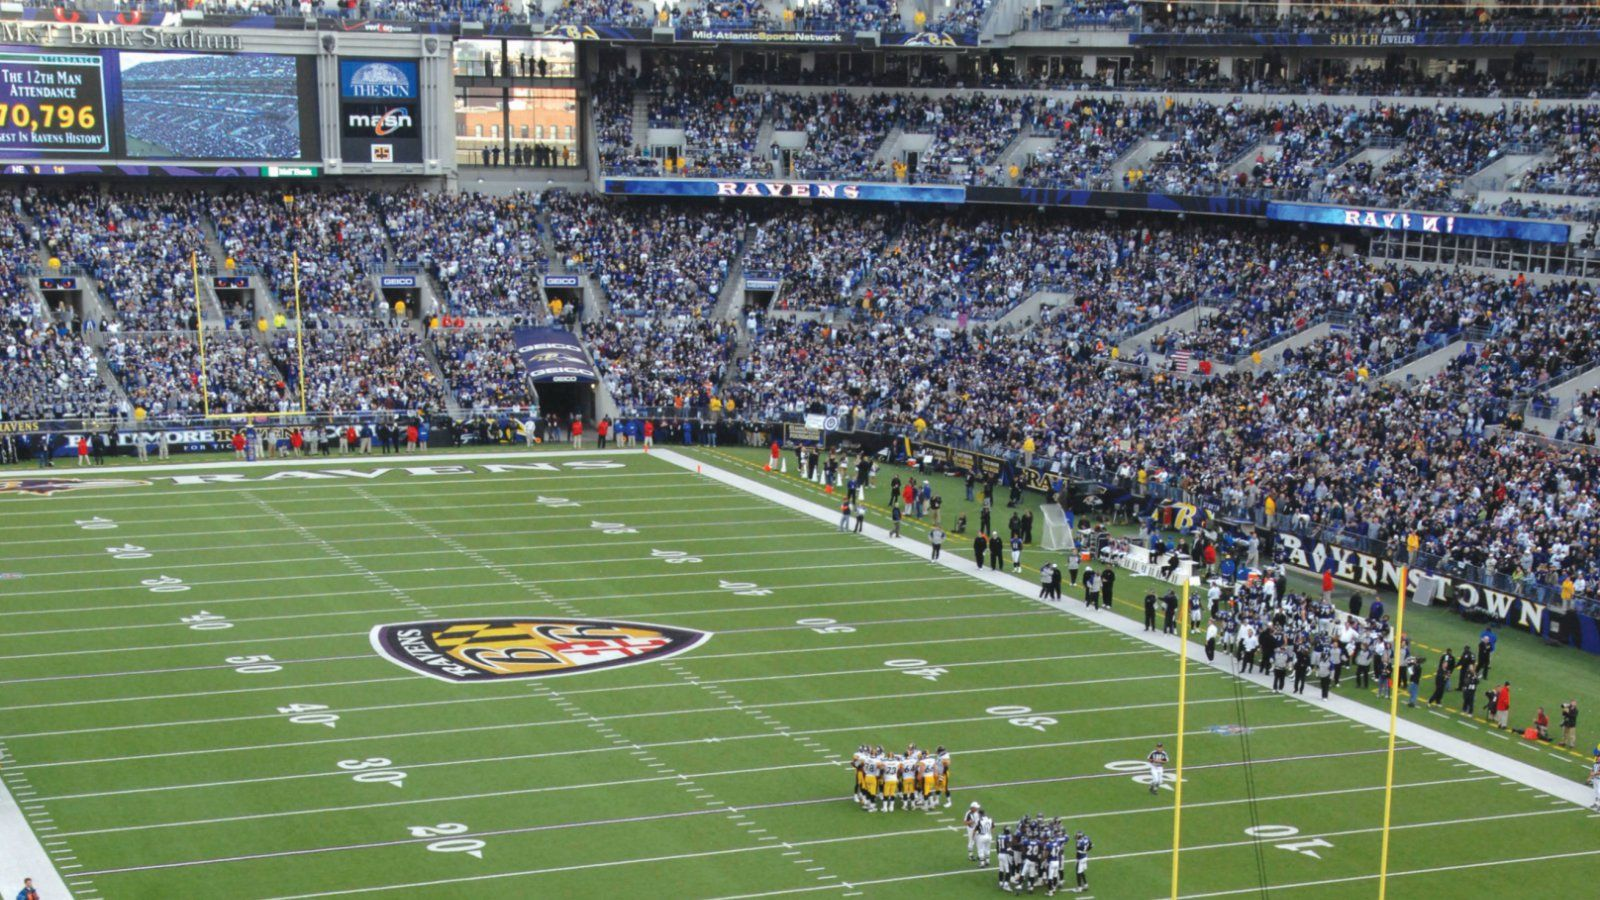 Things to do in Columbia MD - M&T Bank Stadium